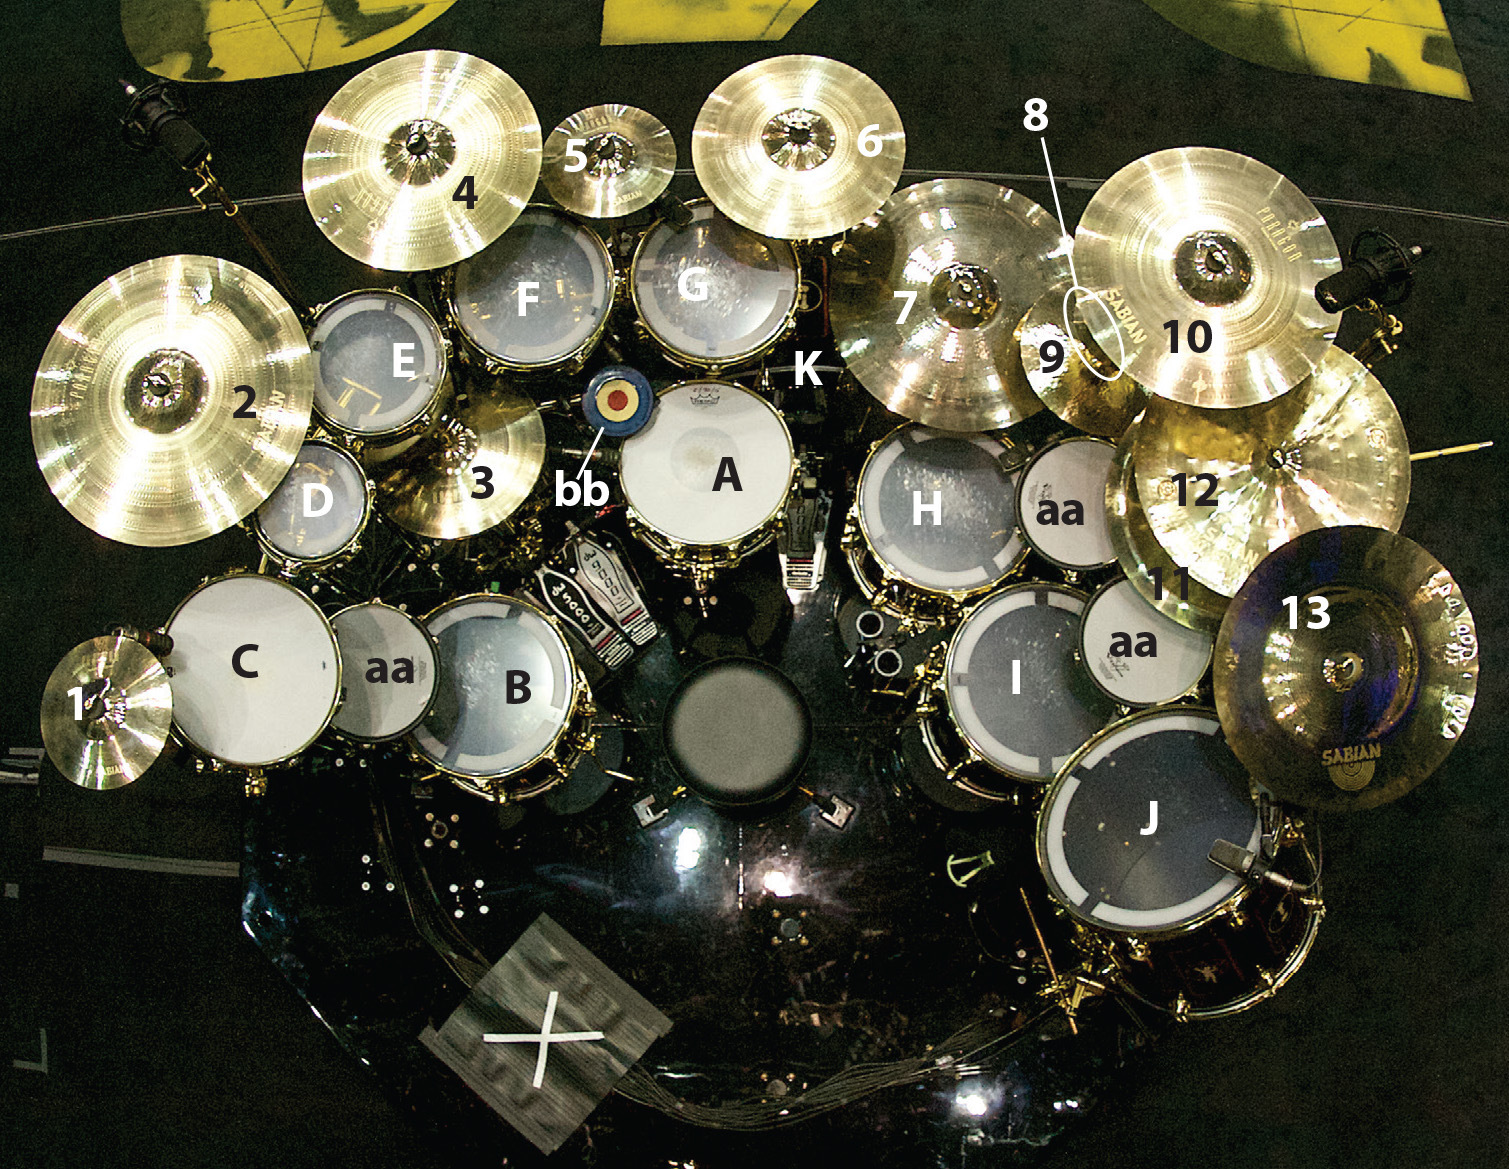 neil pearts r40 drums